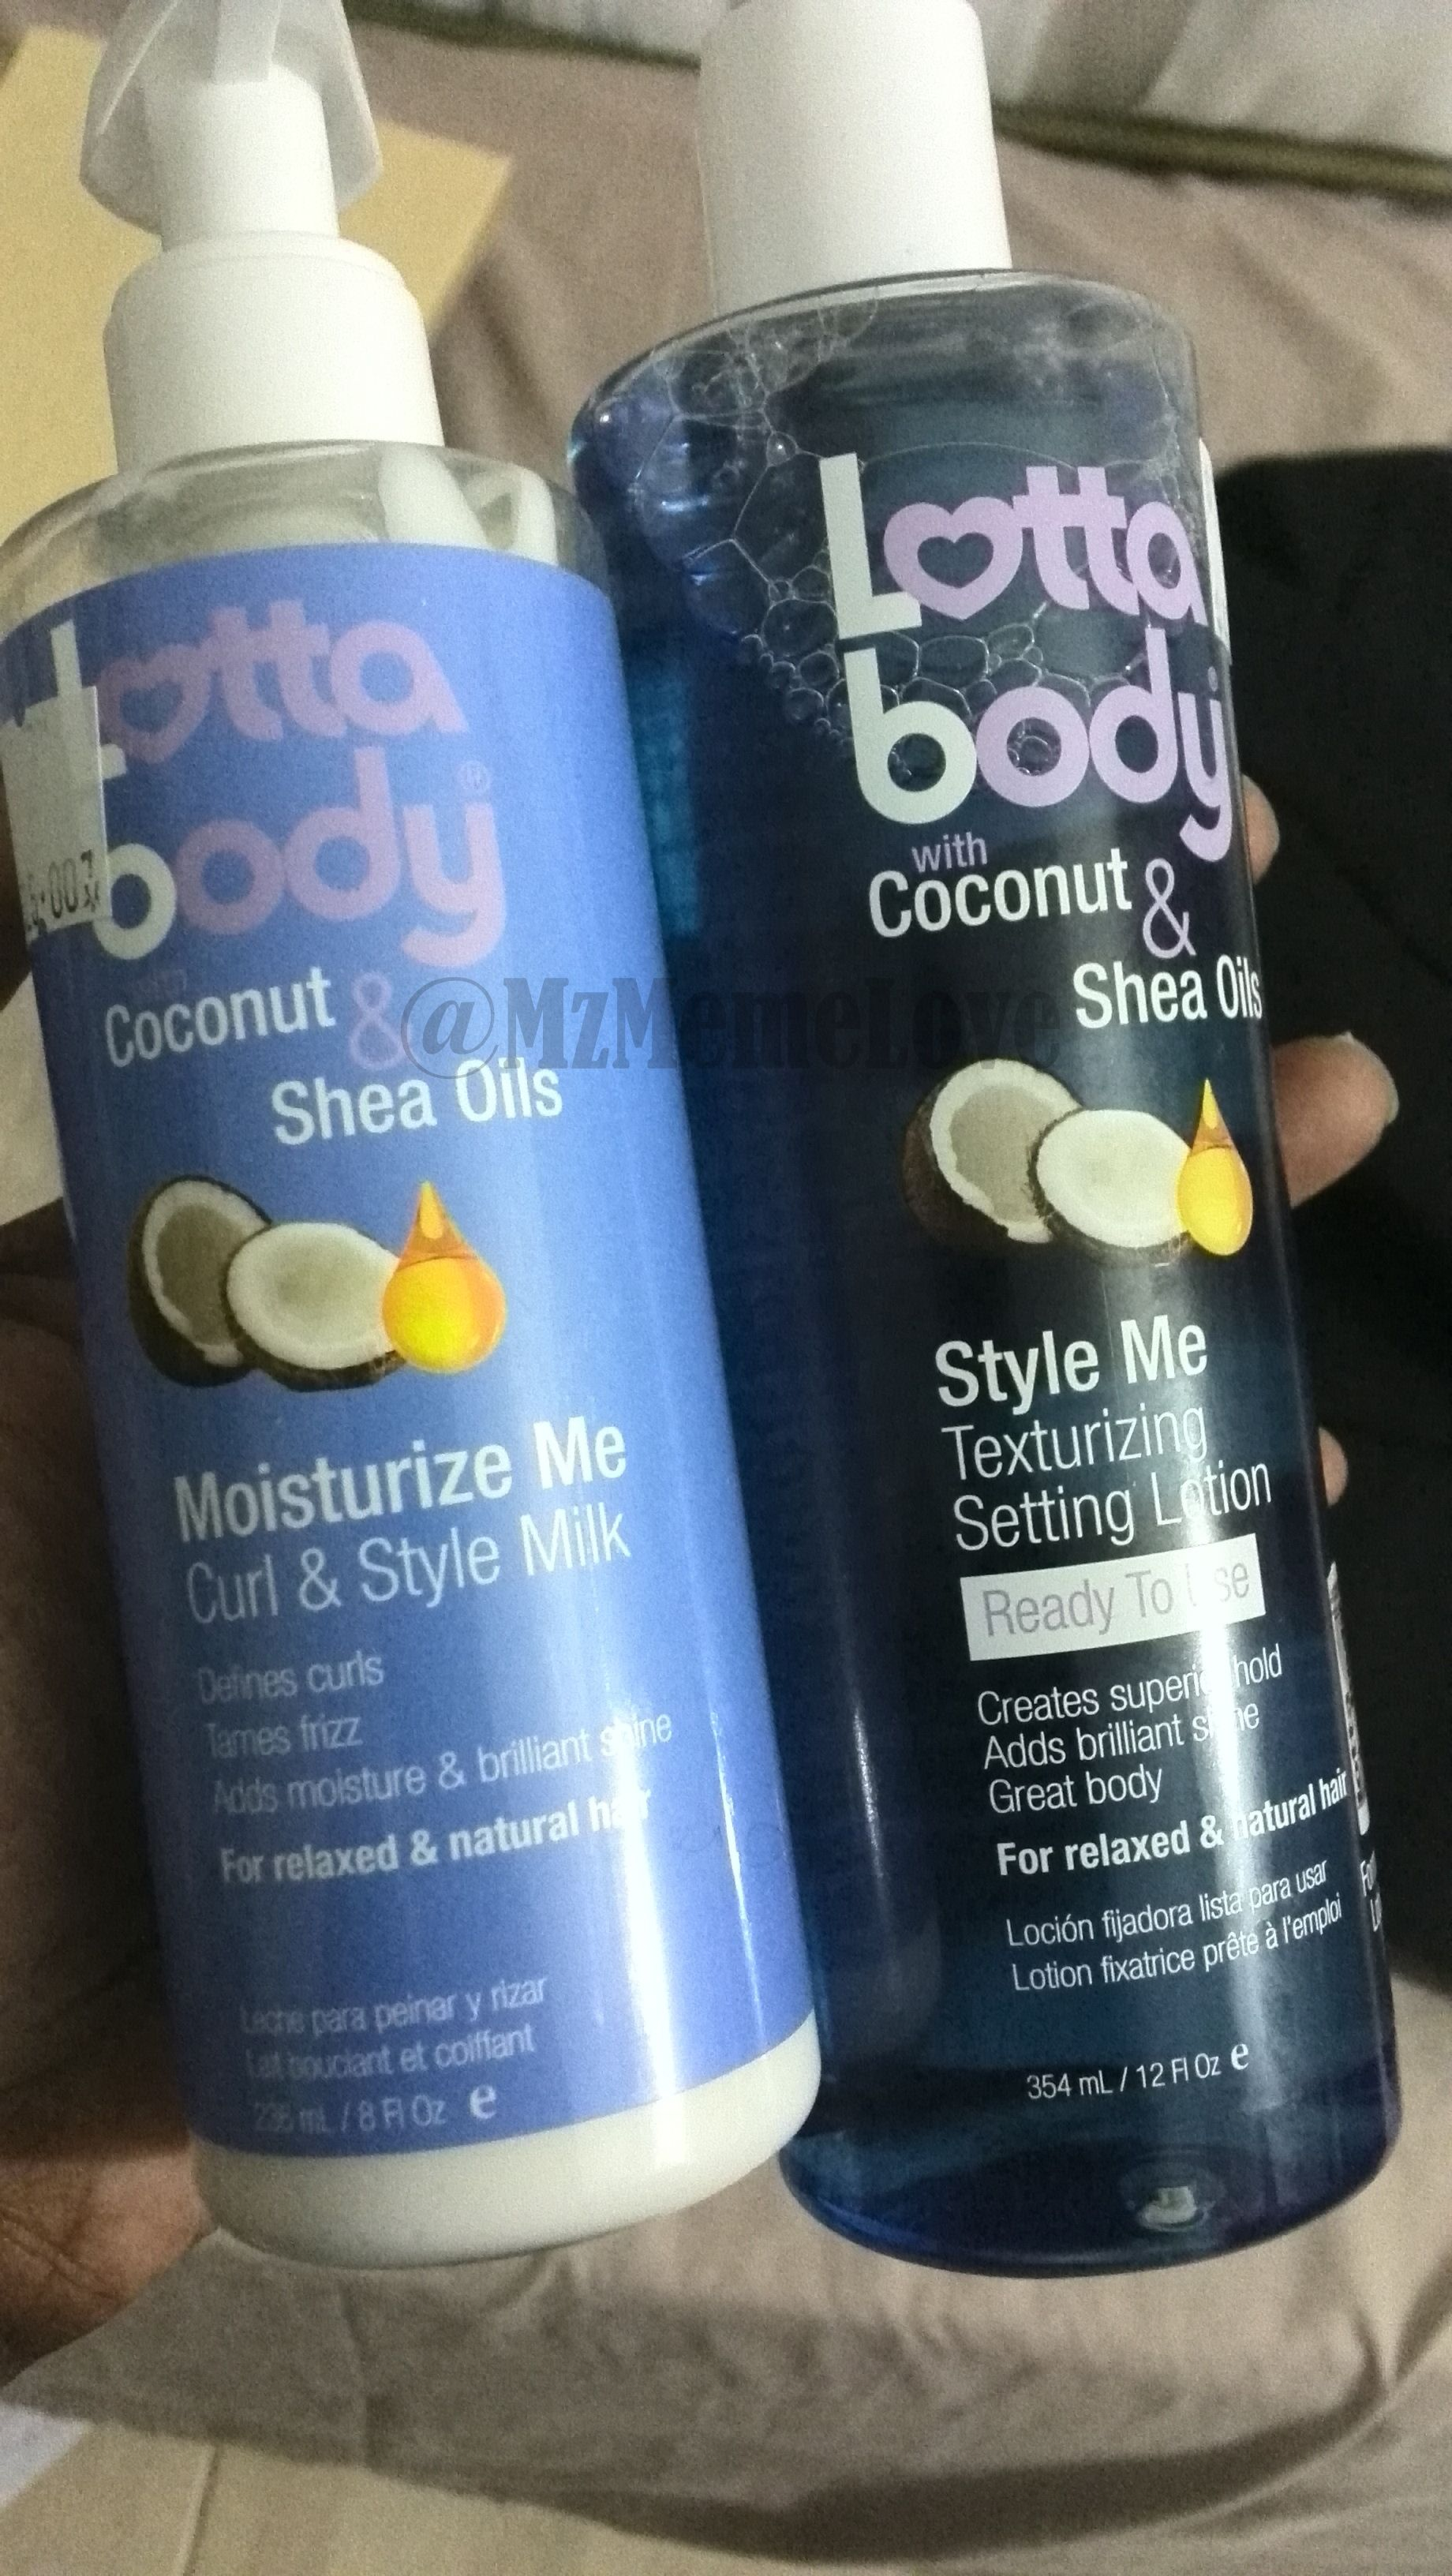 Lotta Body Curl & Style Milk (L) and Setting Lotion (R